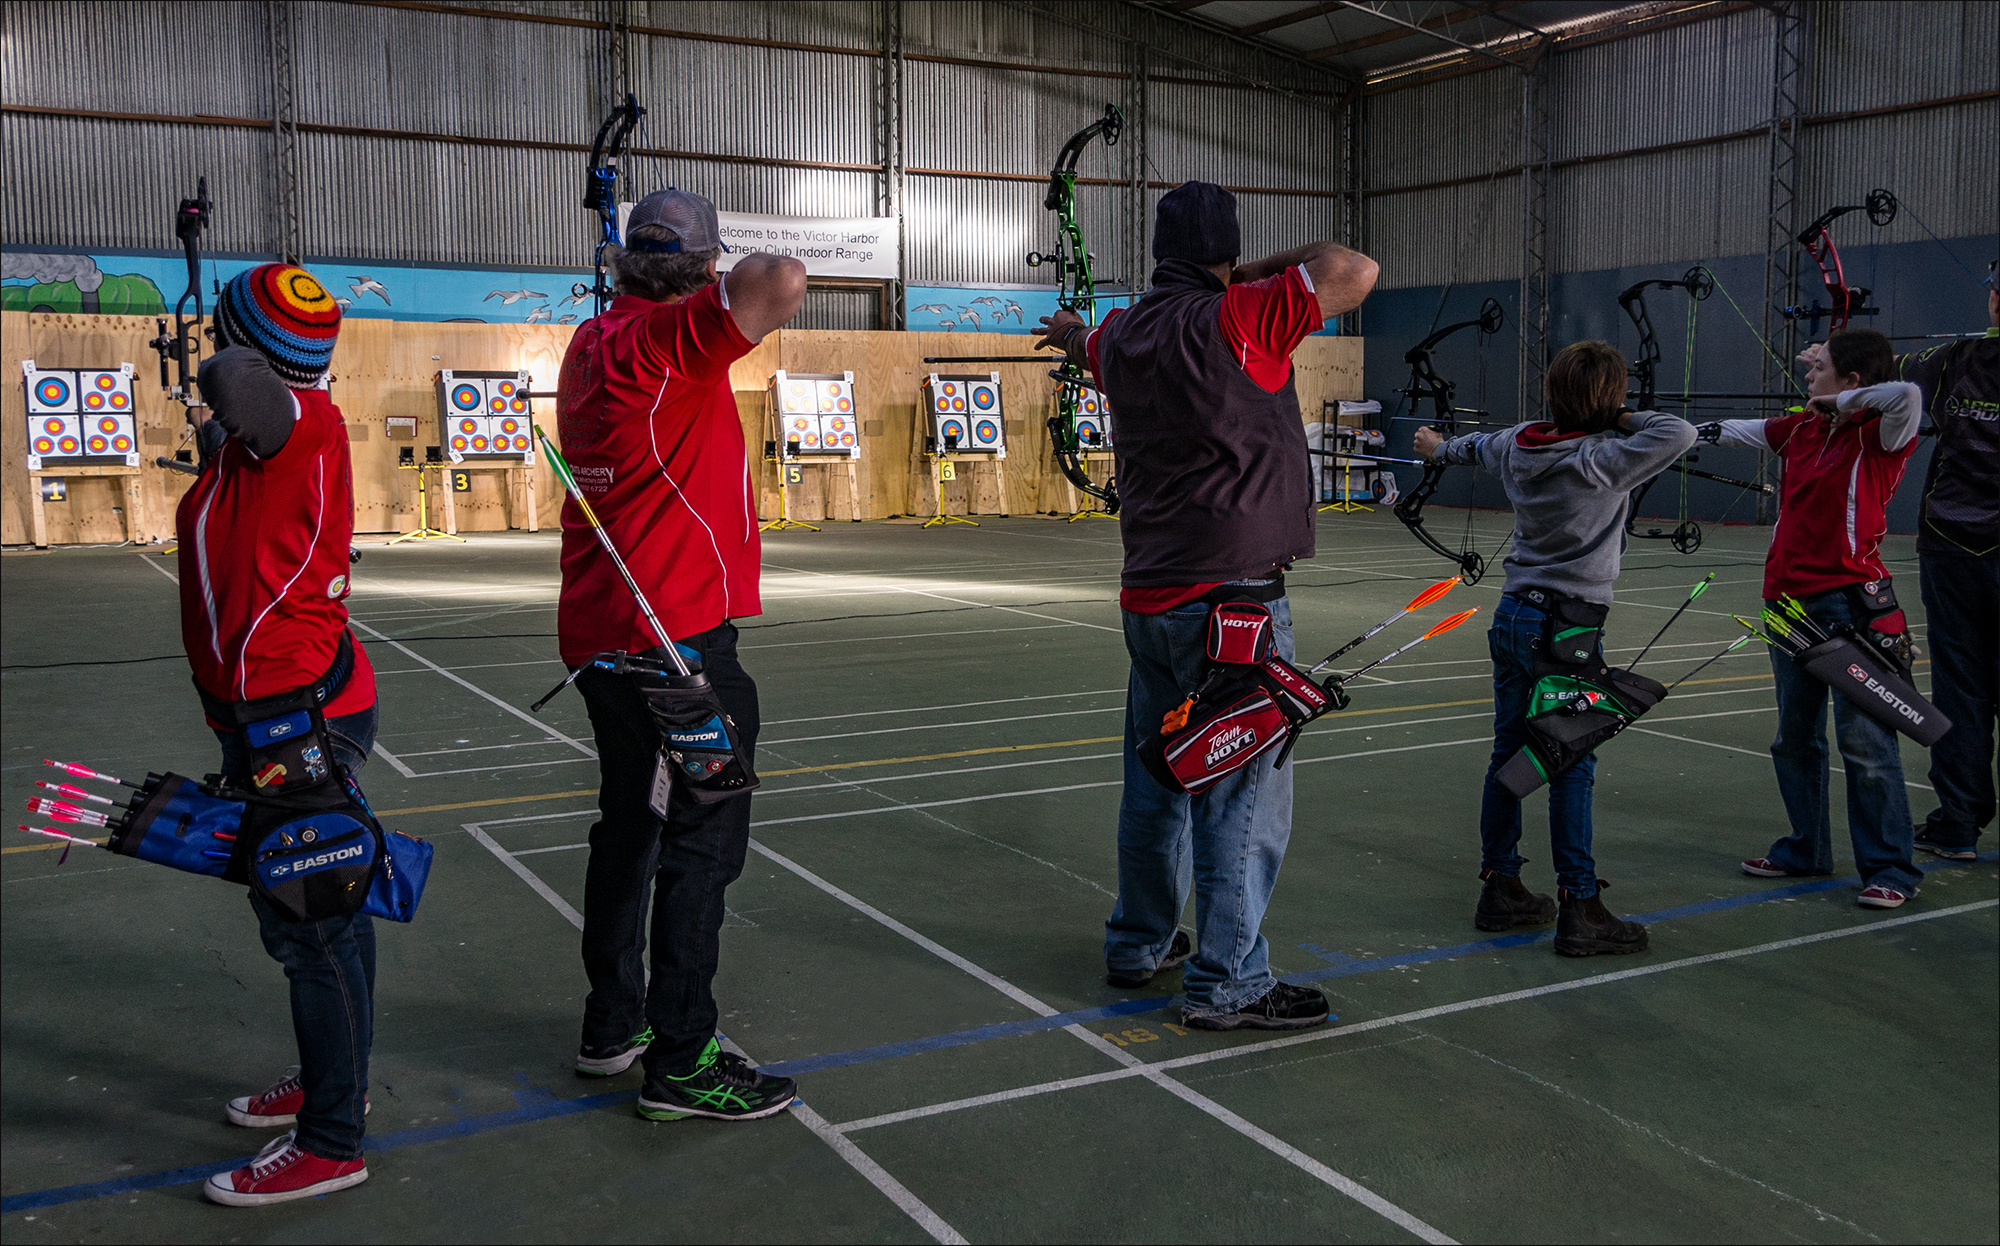 VHAC competing archers